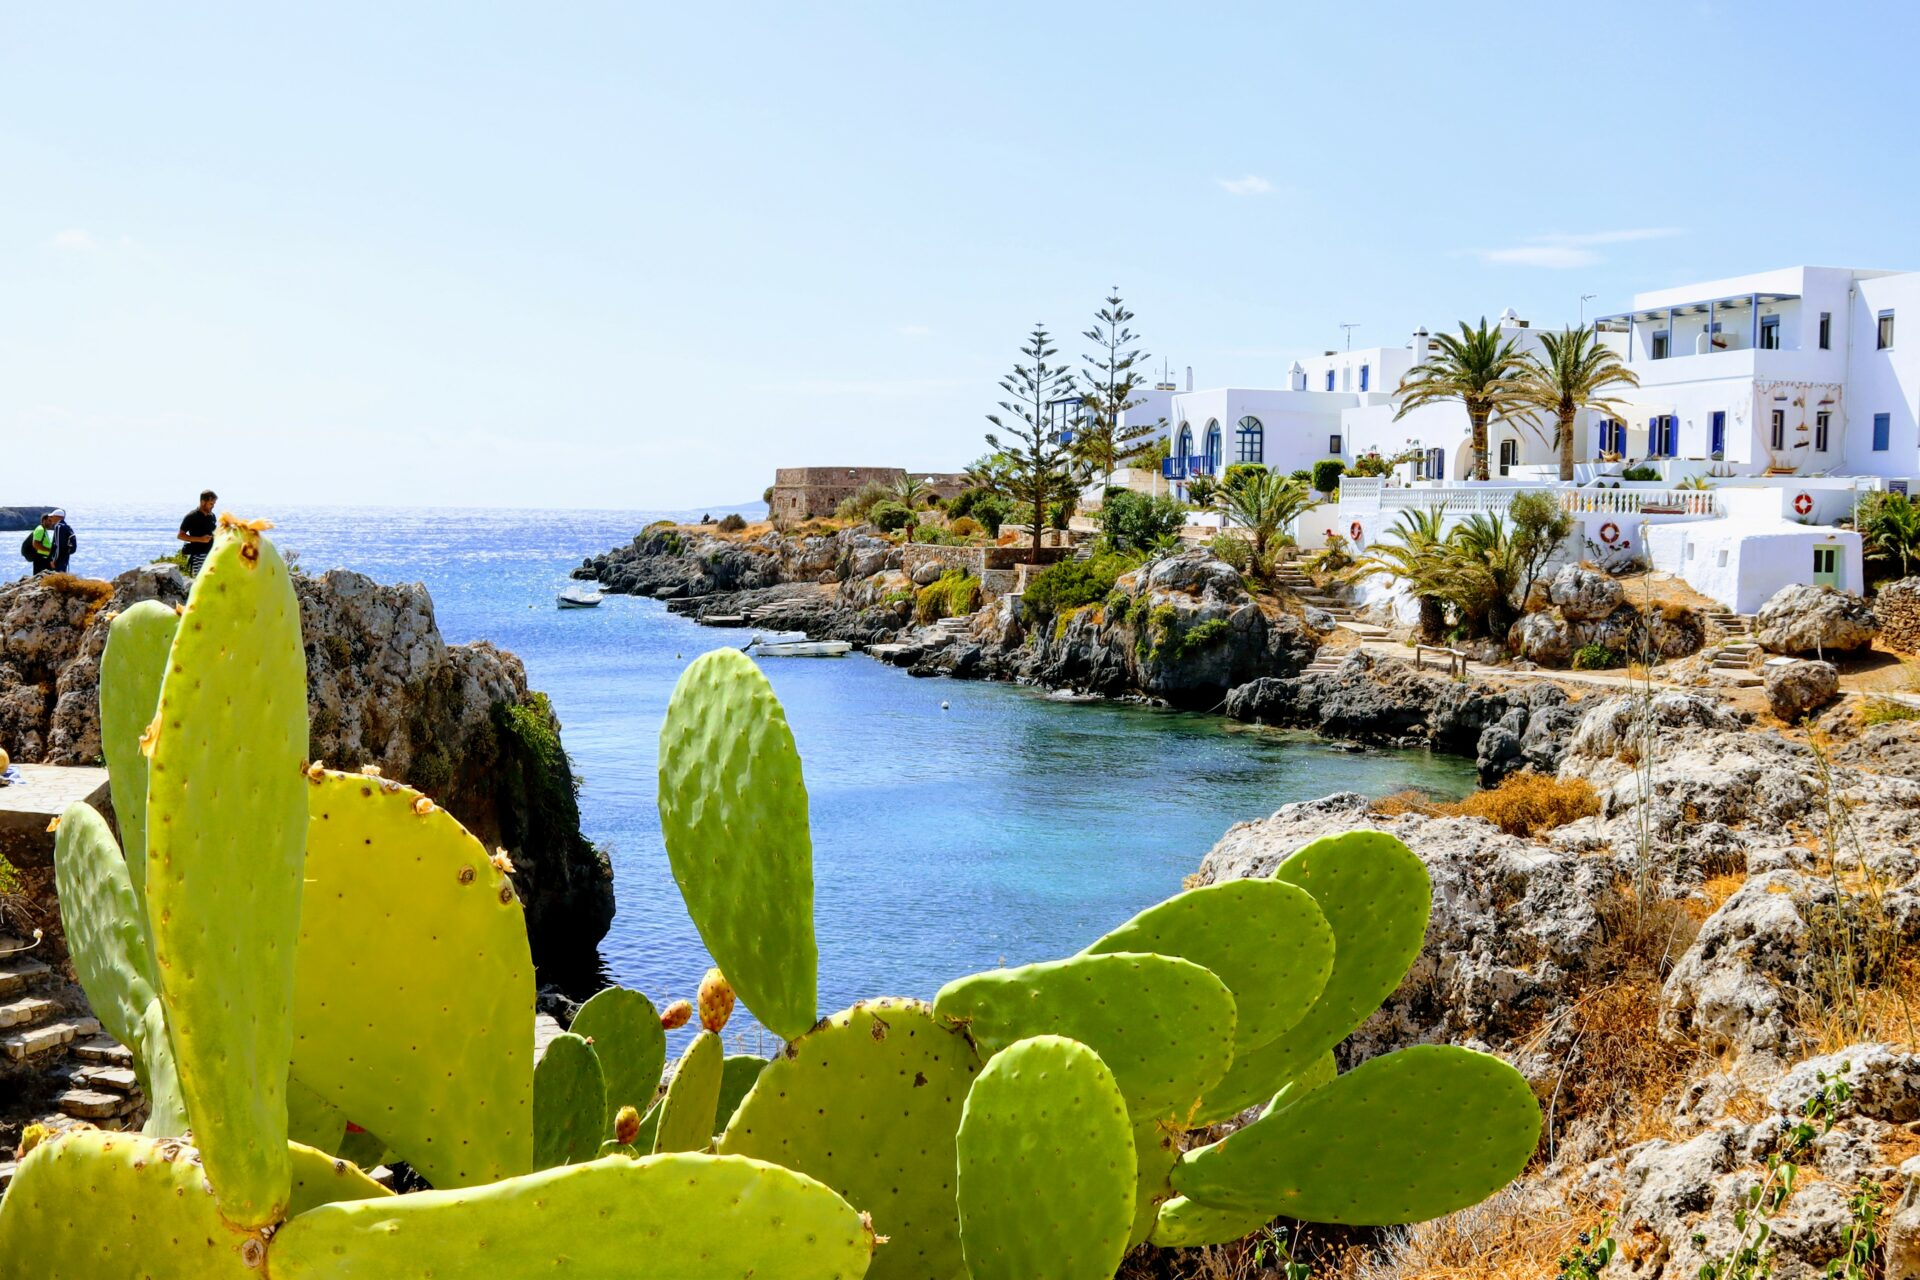 Sea view in Greece, small island Kythera, cacti, blue see, white houses